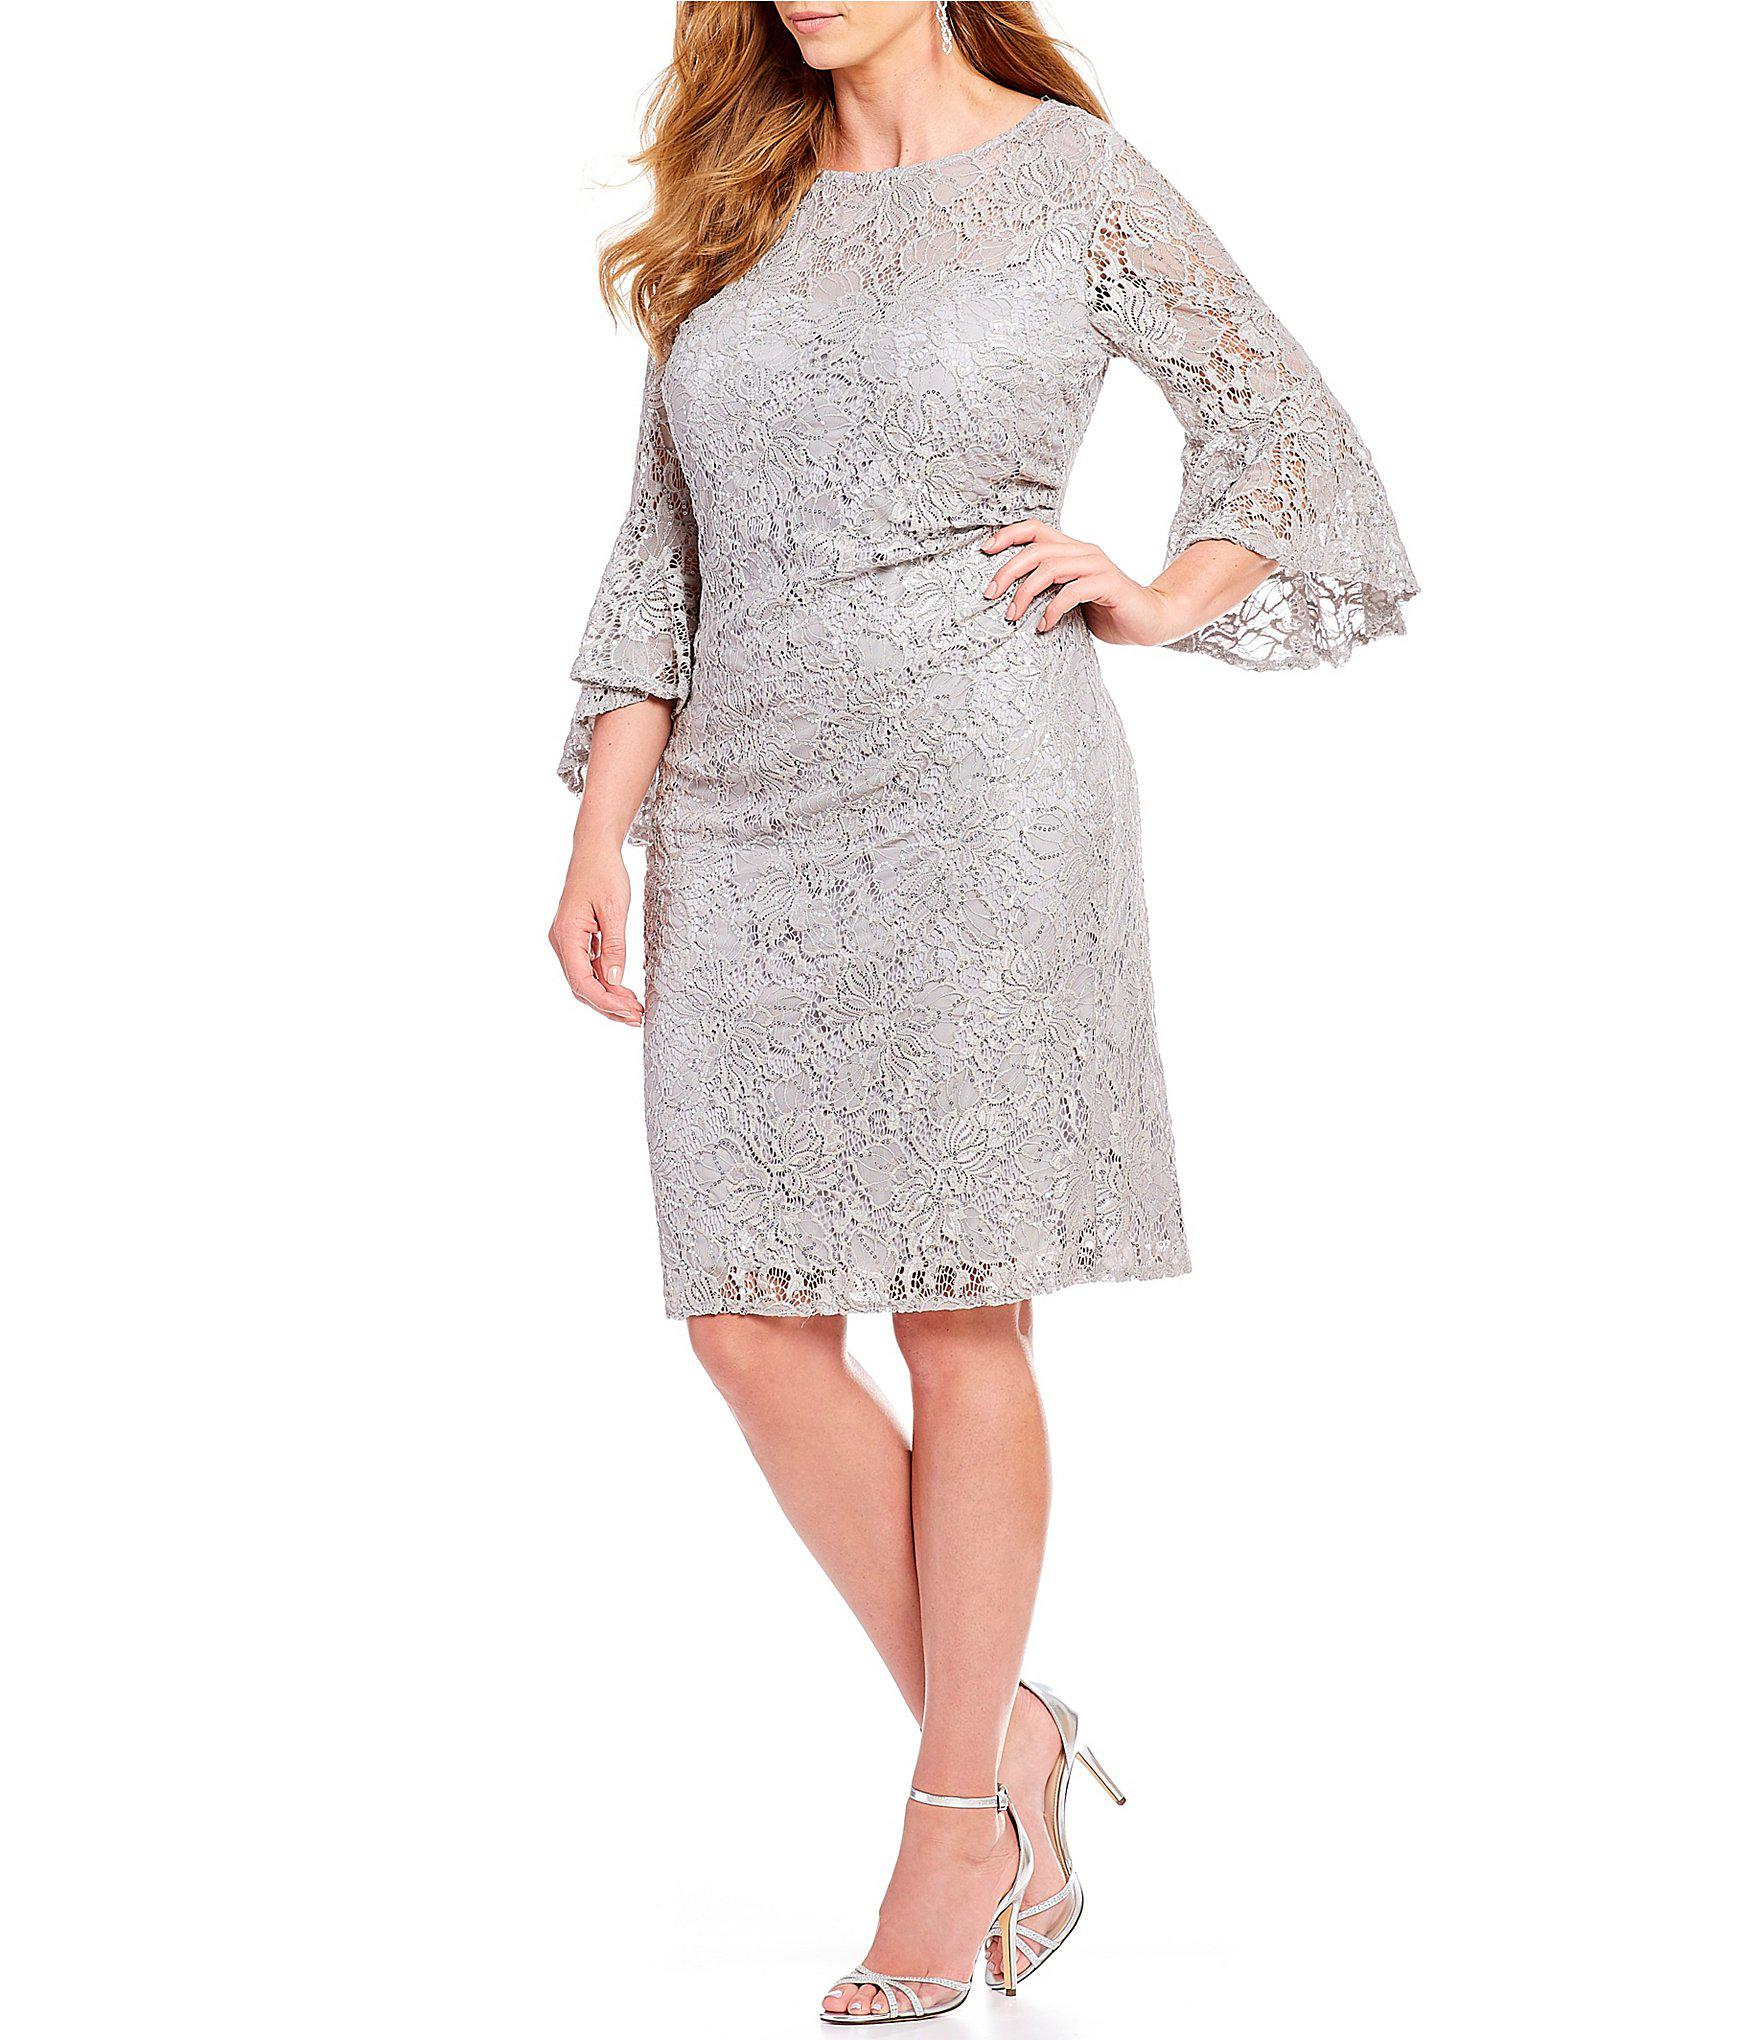 03c0f064bf8 R   M Richards. Women s Metallic Plus Size Sequin Lace Bell Sleeve Dress